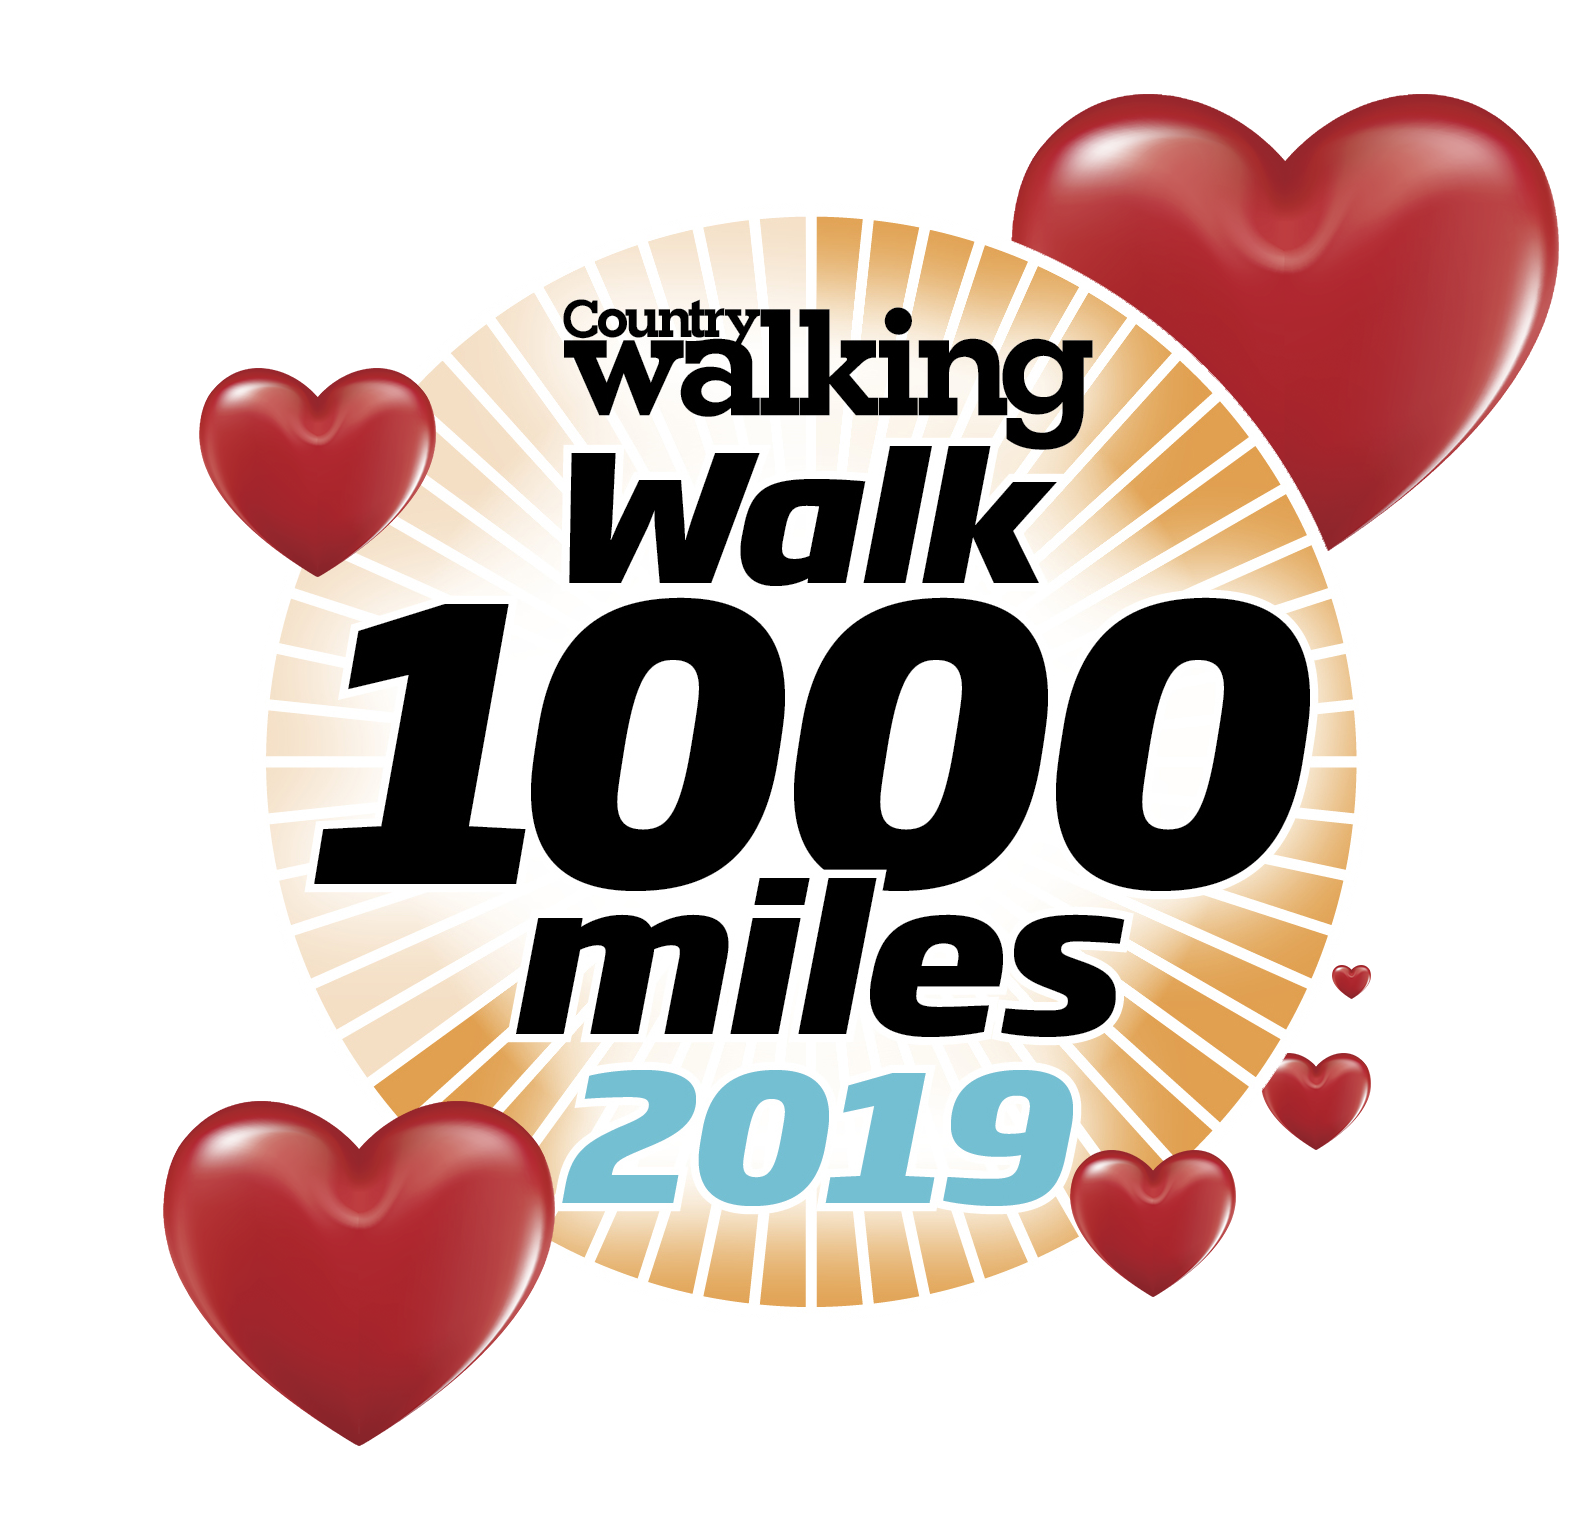 Walk 1000 miles logo 2019 with hearts.png